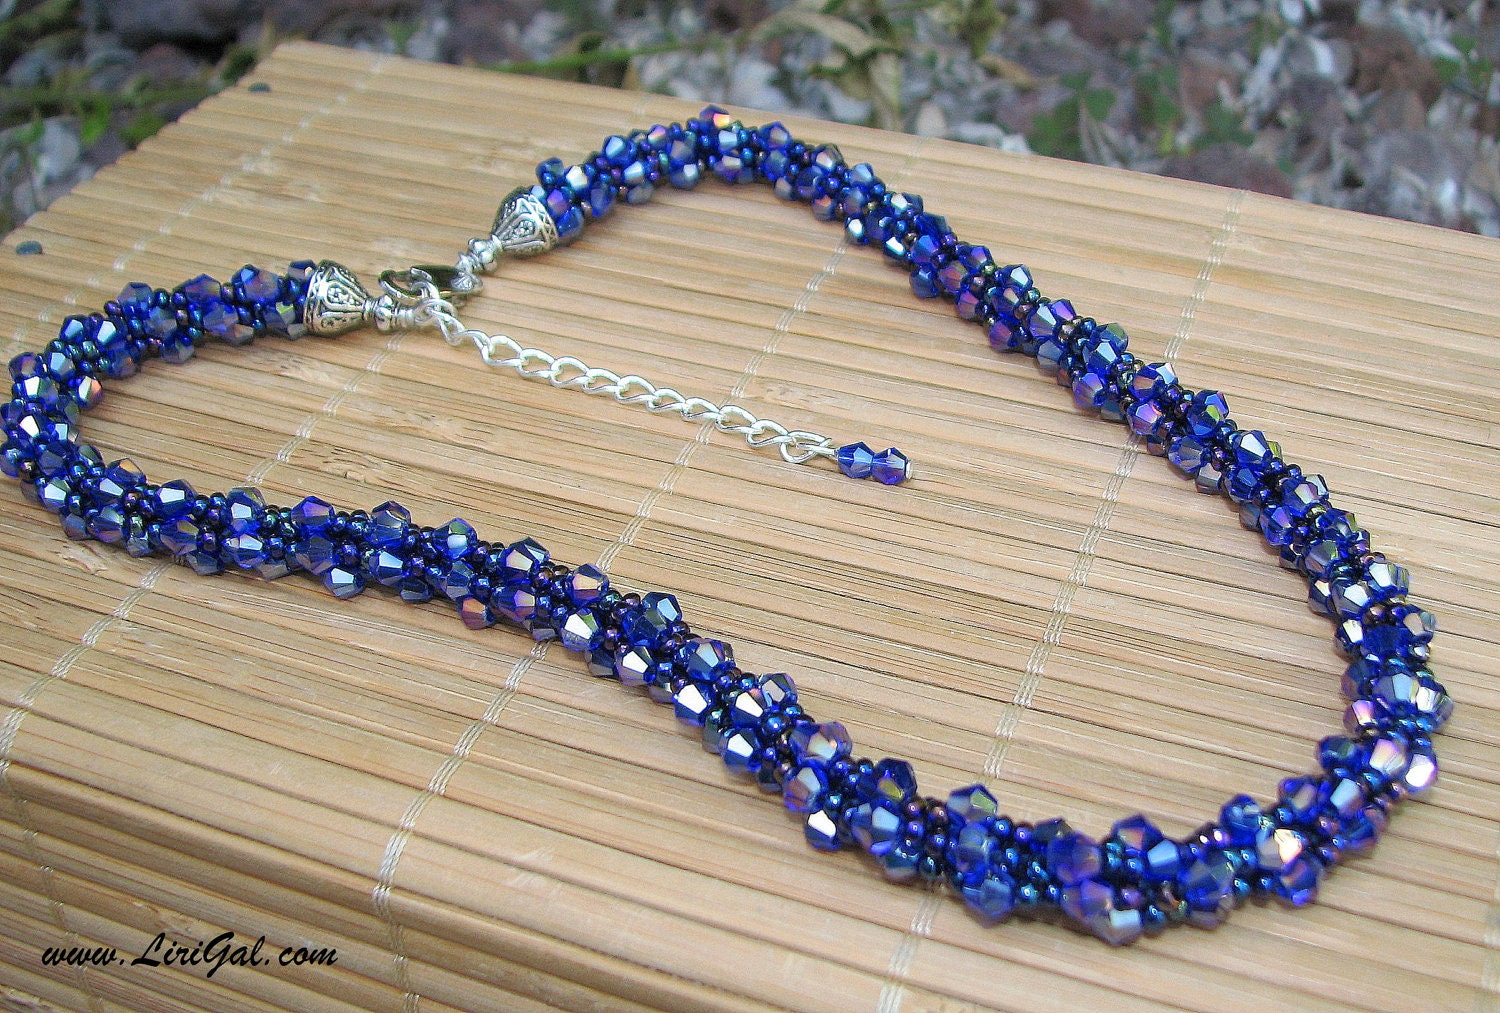 Niagara Falls. Blue Crystals Beaded Necklace